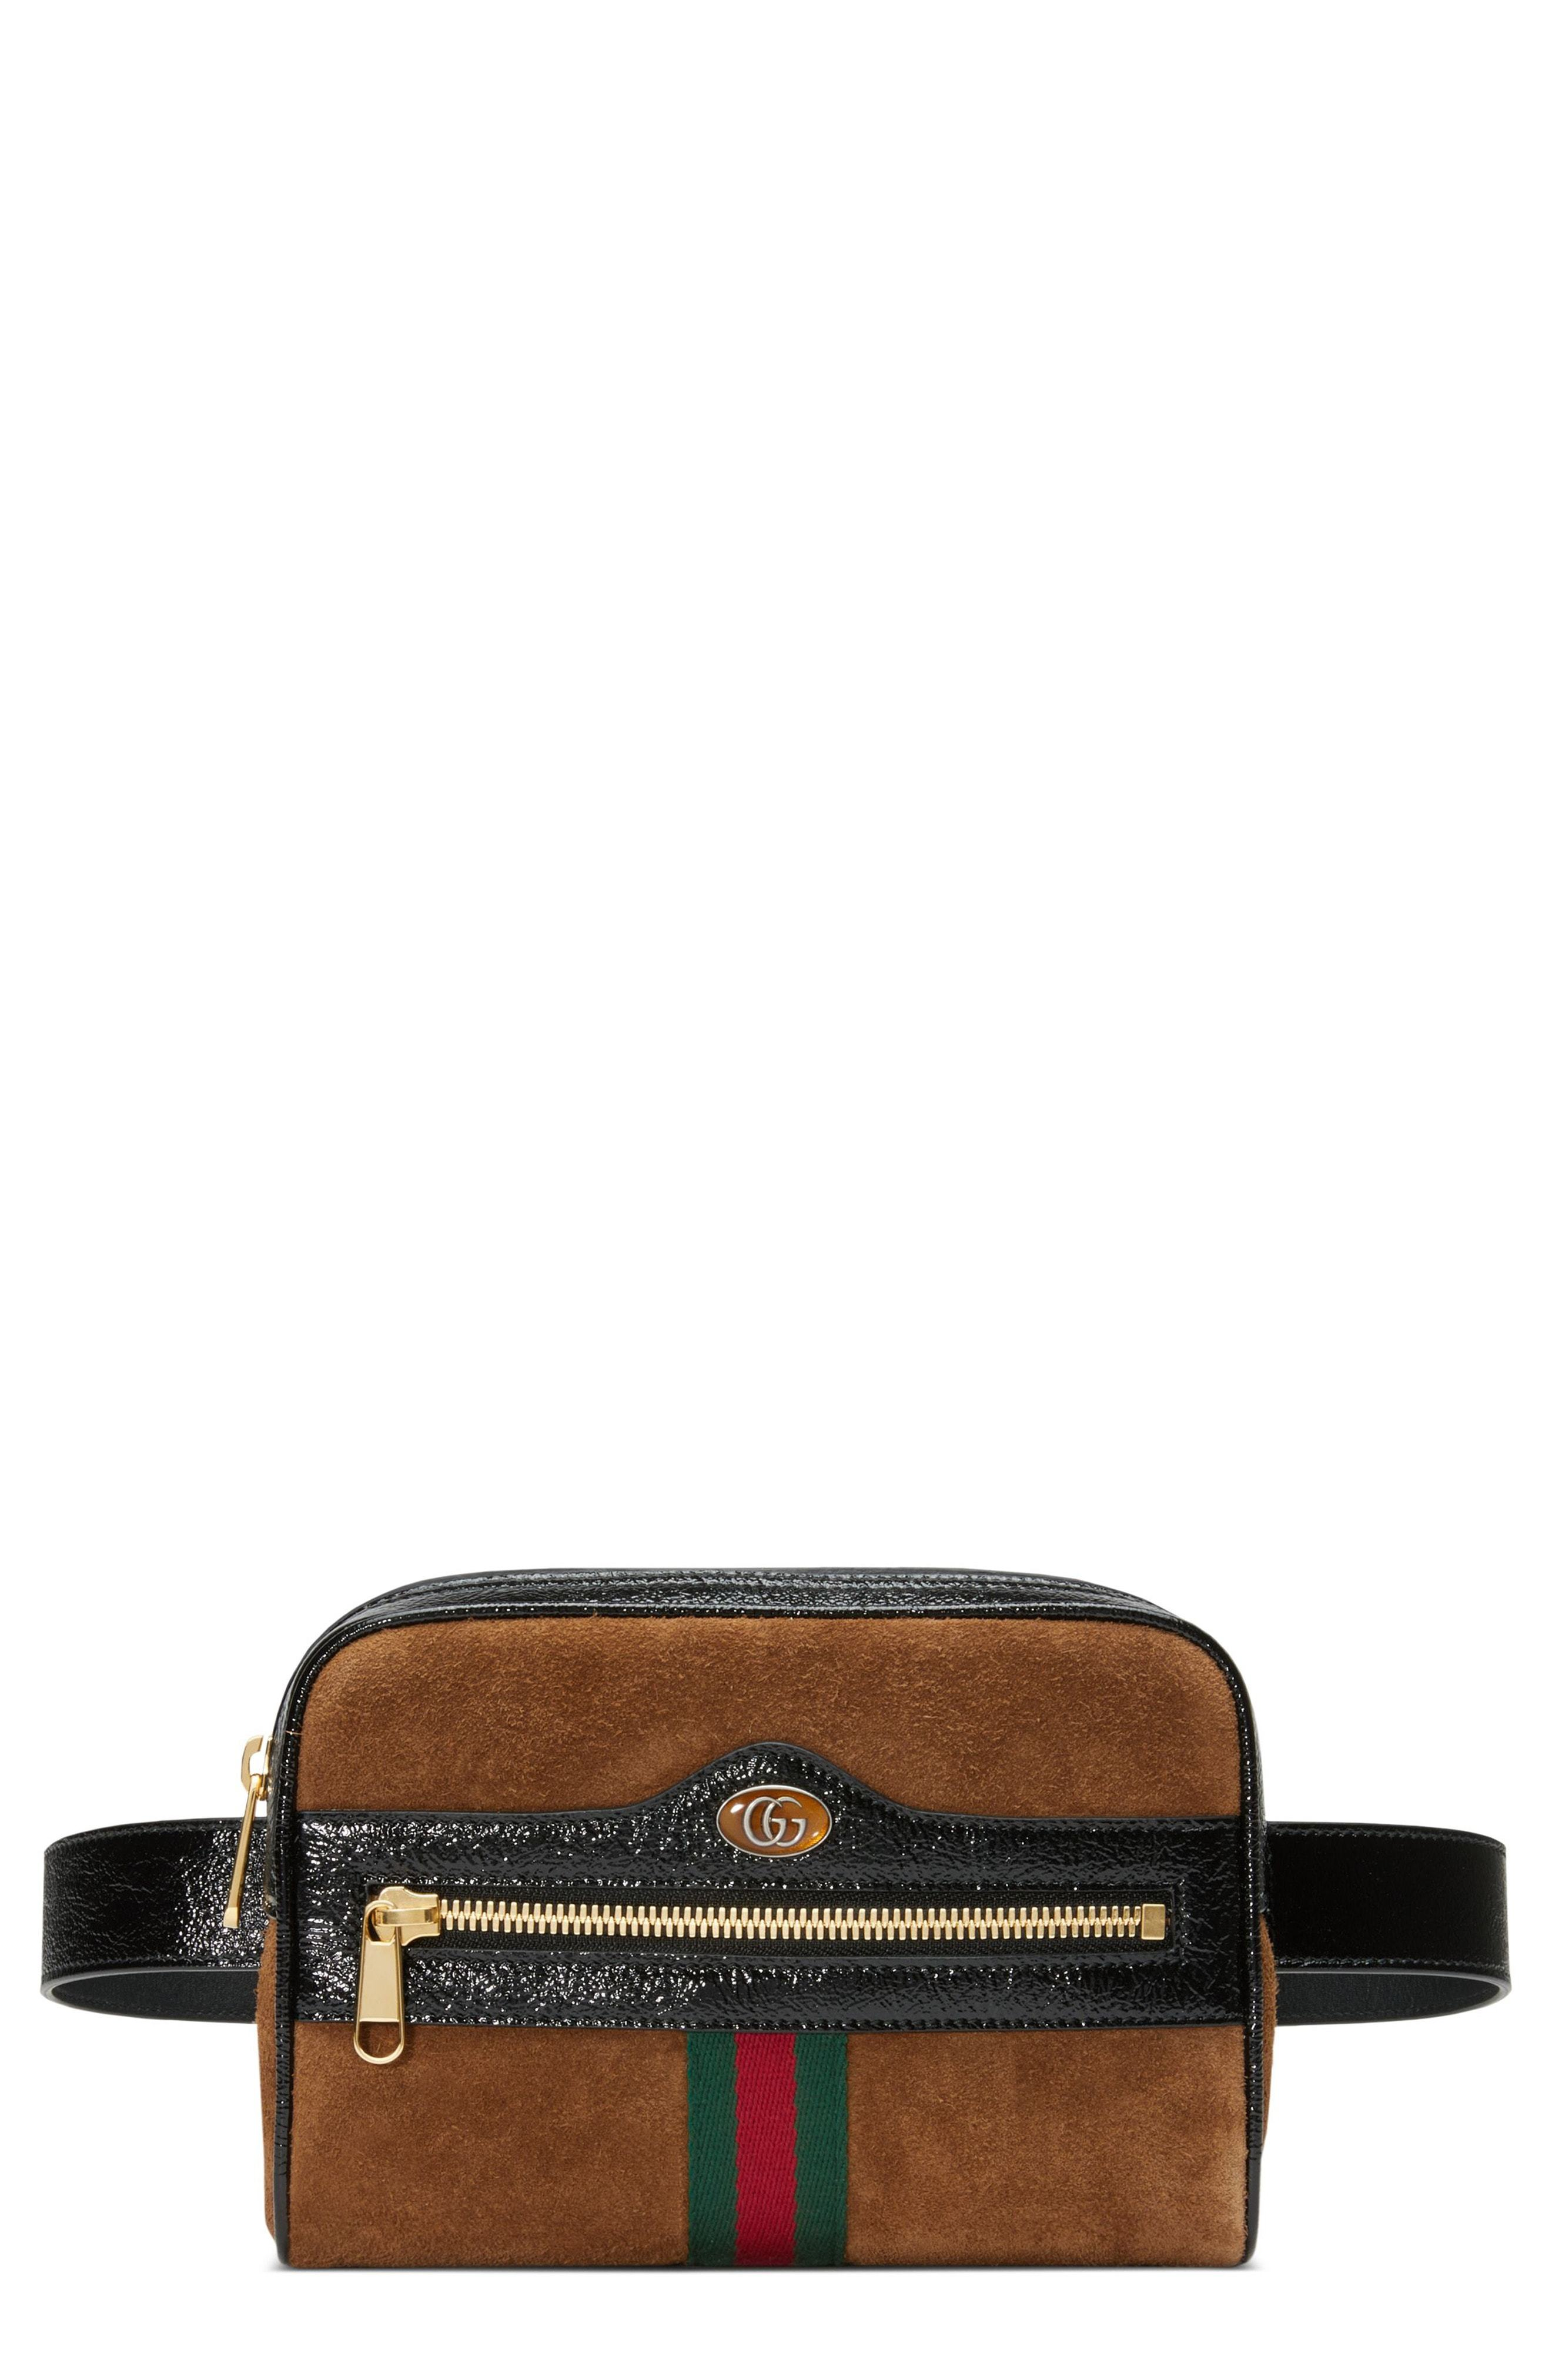 841eb7cb12fe68 Gucci Ophidia Small Suede Belt Bag, $1,390   Nordstrom   Lookastic.com